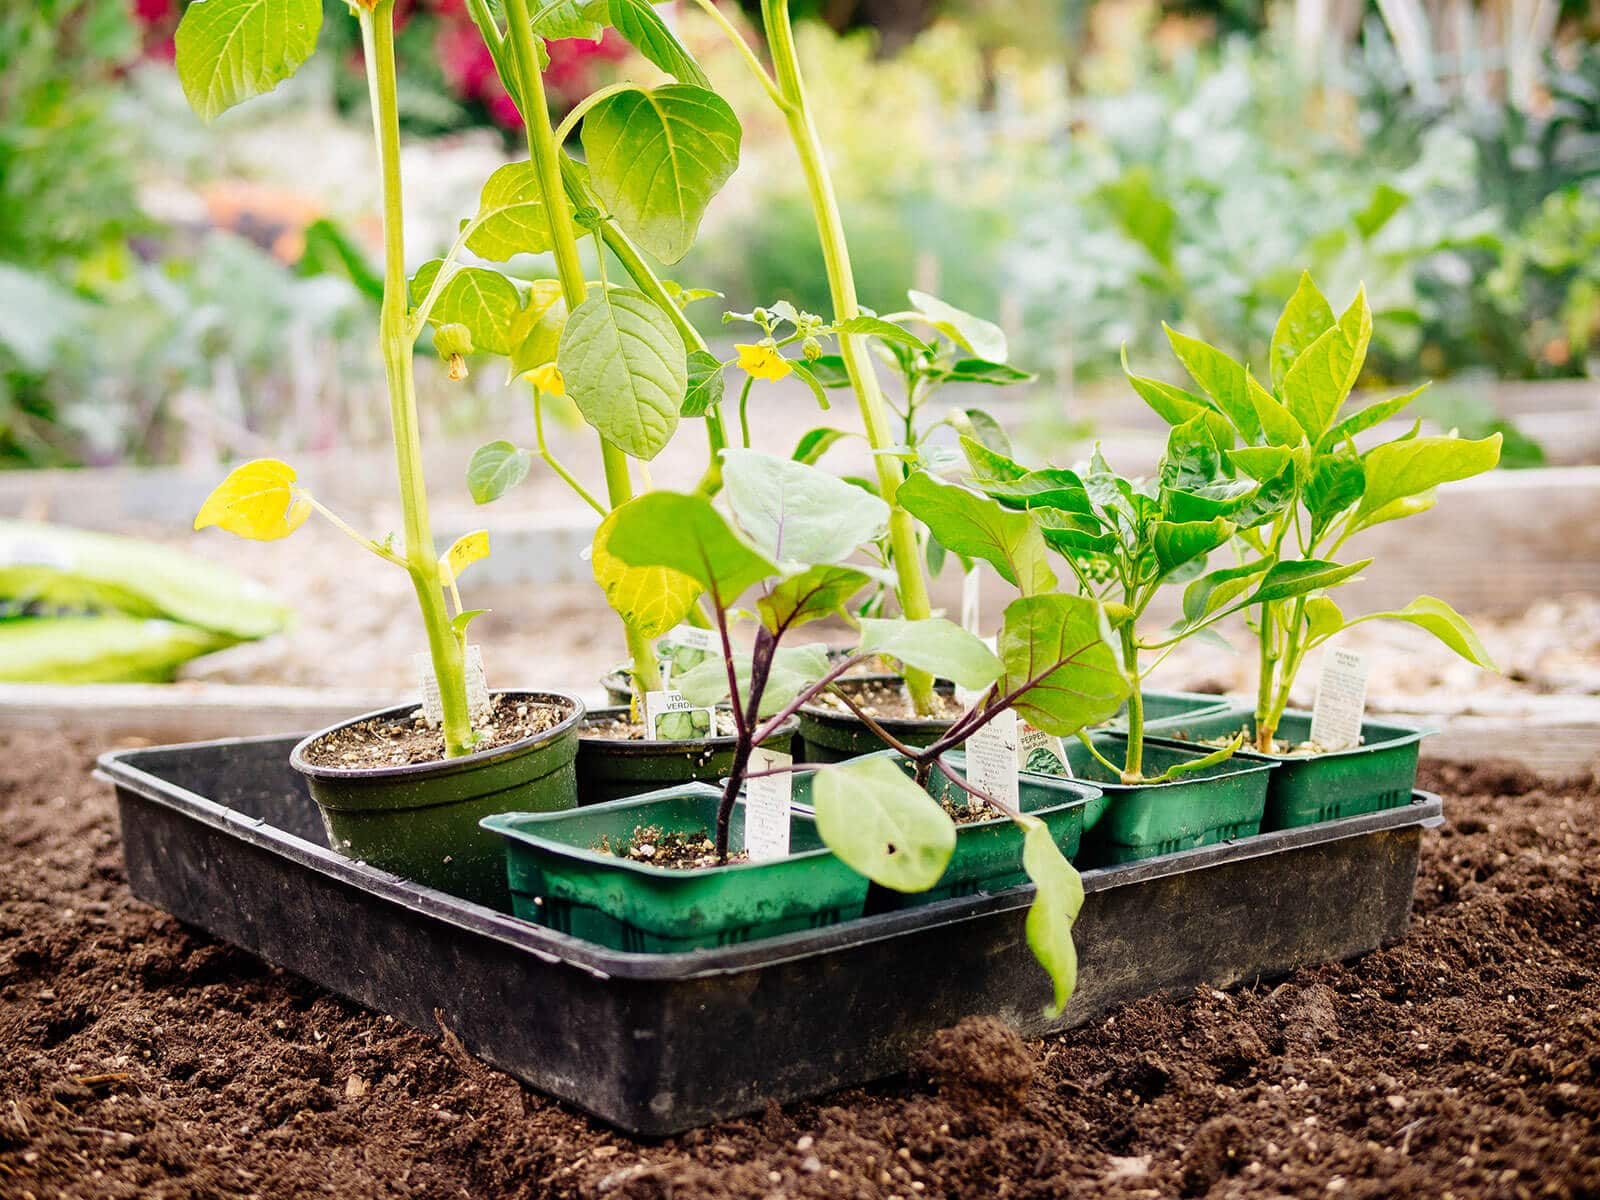 Seedlings purchased from a nursery should be hardened off before transplanting